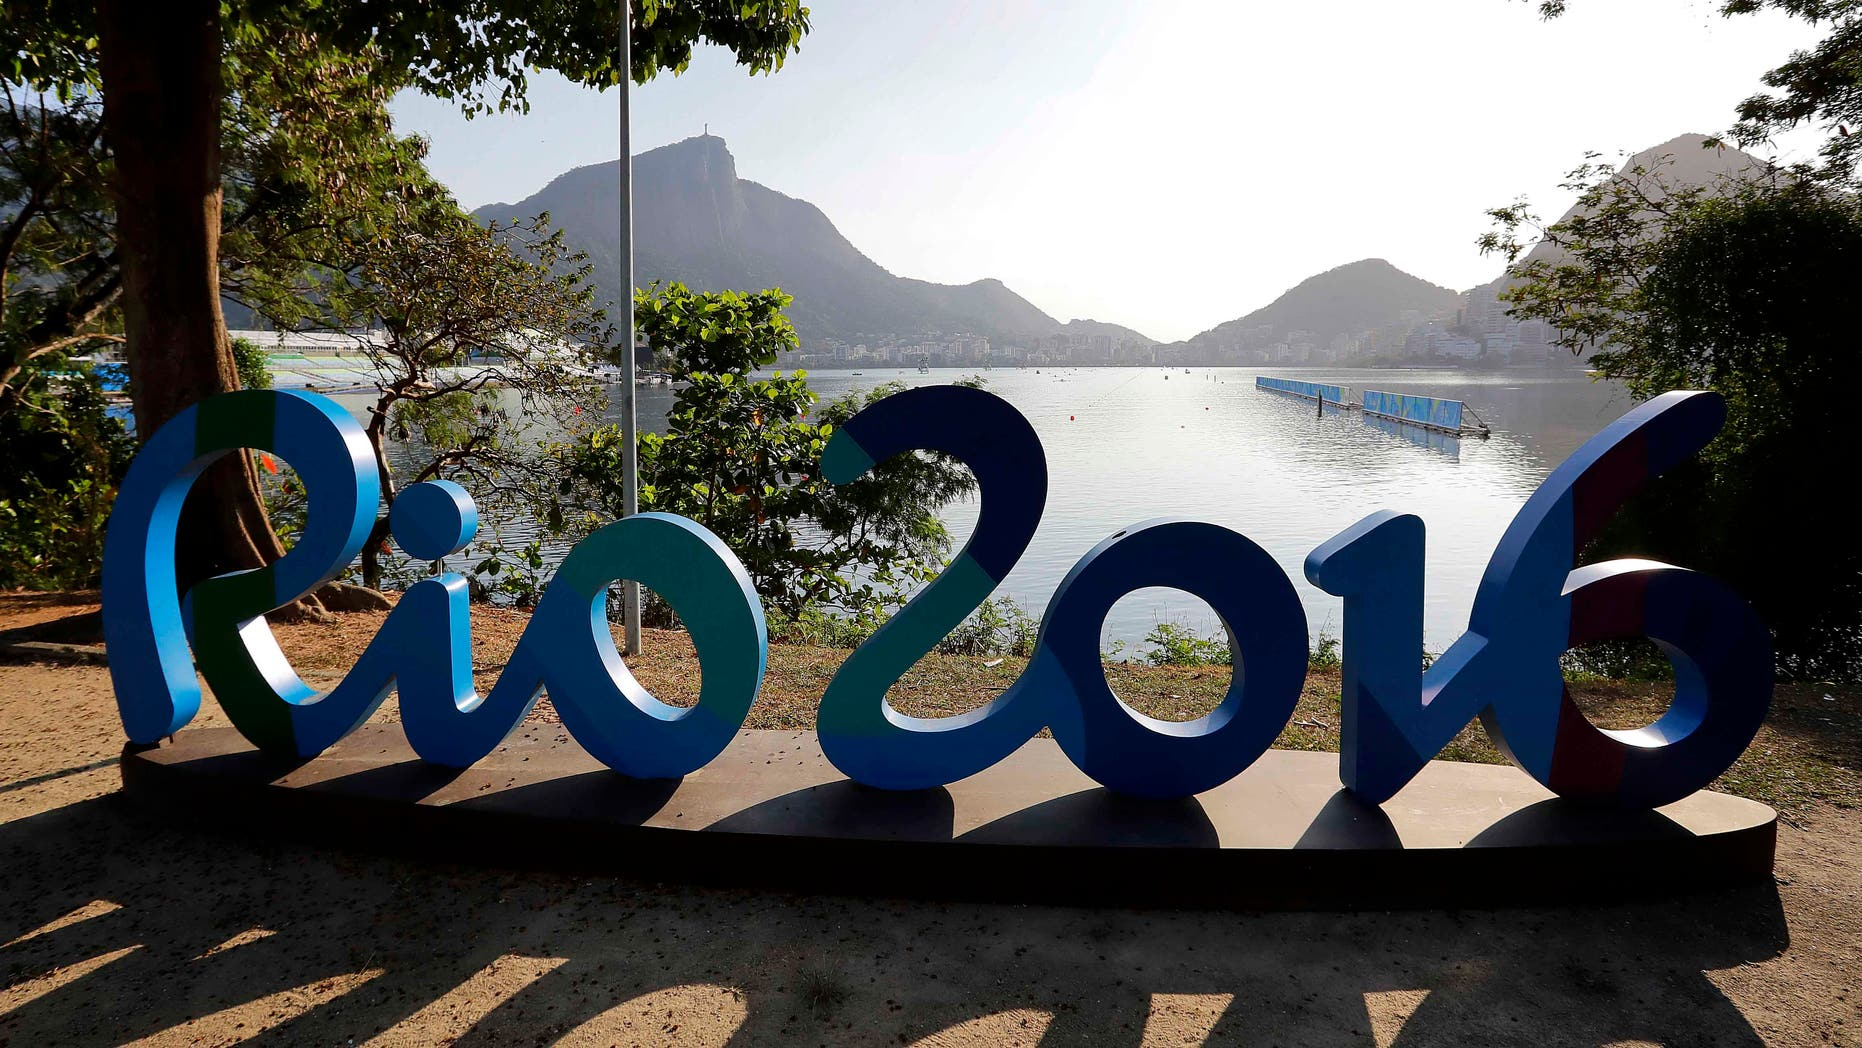 Rowers warm up during rowing team practices in Lagoa ahead of the 2016 Summer Olympics in Rio de Janeiro, Brazil, Friday, Aug. 5, 2016. (AP Photo/Matt York)